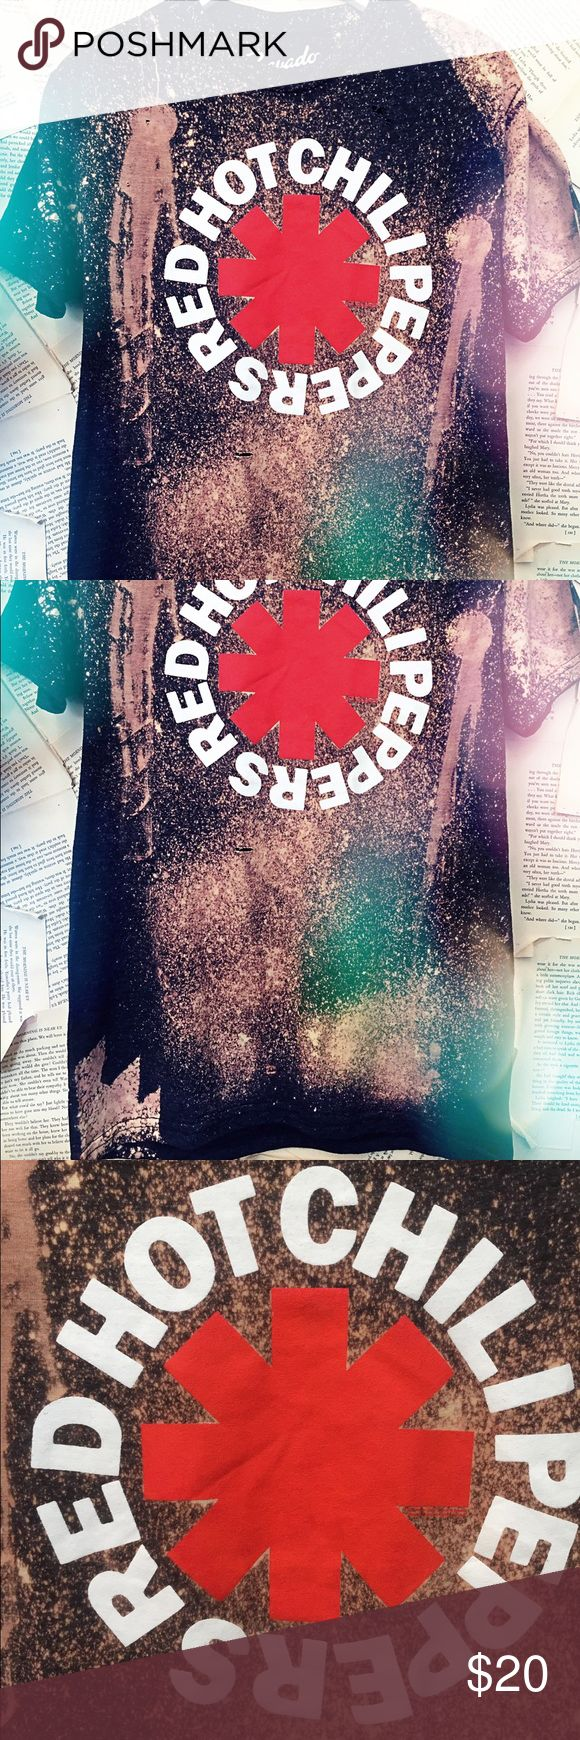 Red hot chili peppers band tee Distressed band tee new with tags. Bravado Tops Tees - Short Sleeve